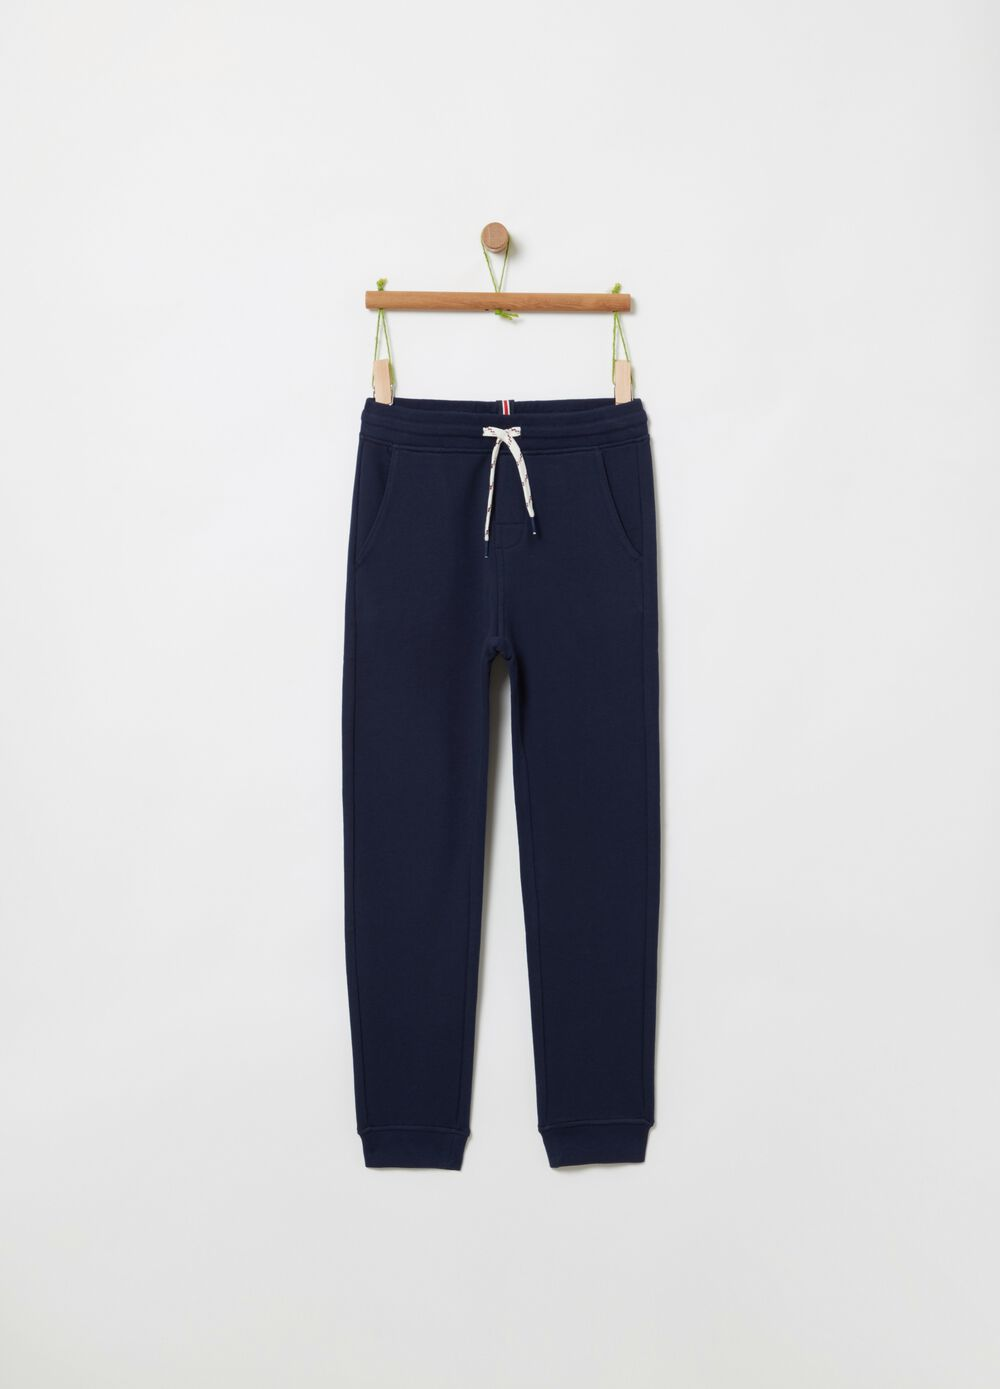 100% cotton jogger trousers